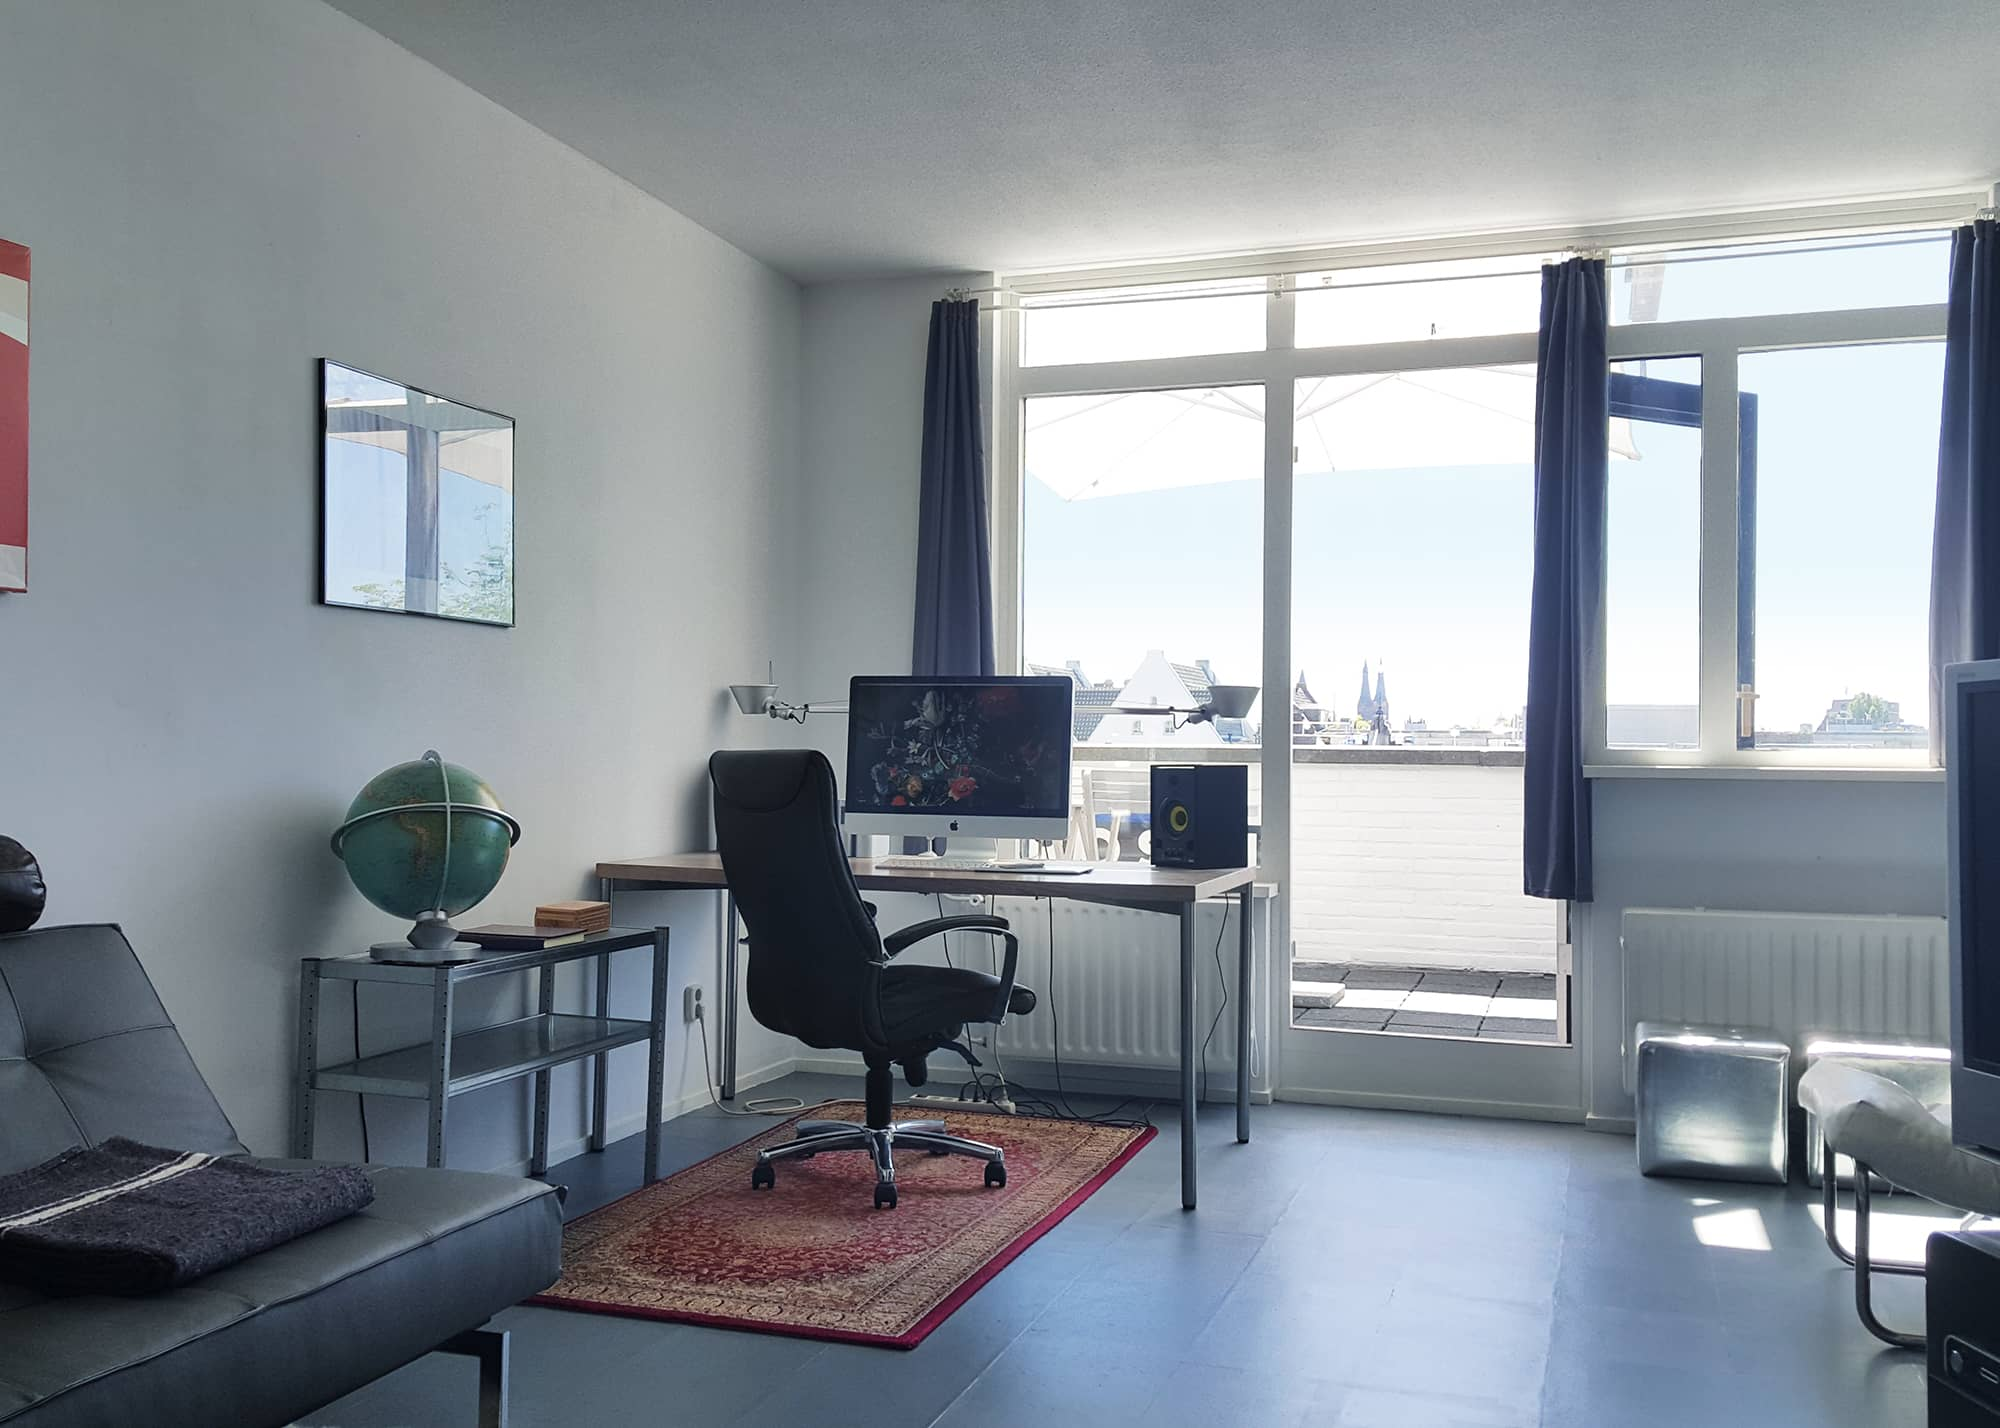 A Modern Minimalist Studio Apartment In Amsterdam With An Amazing